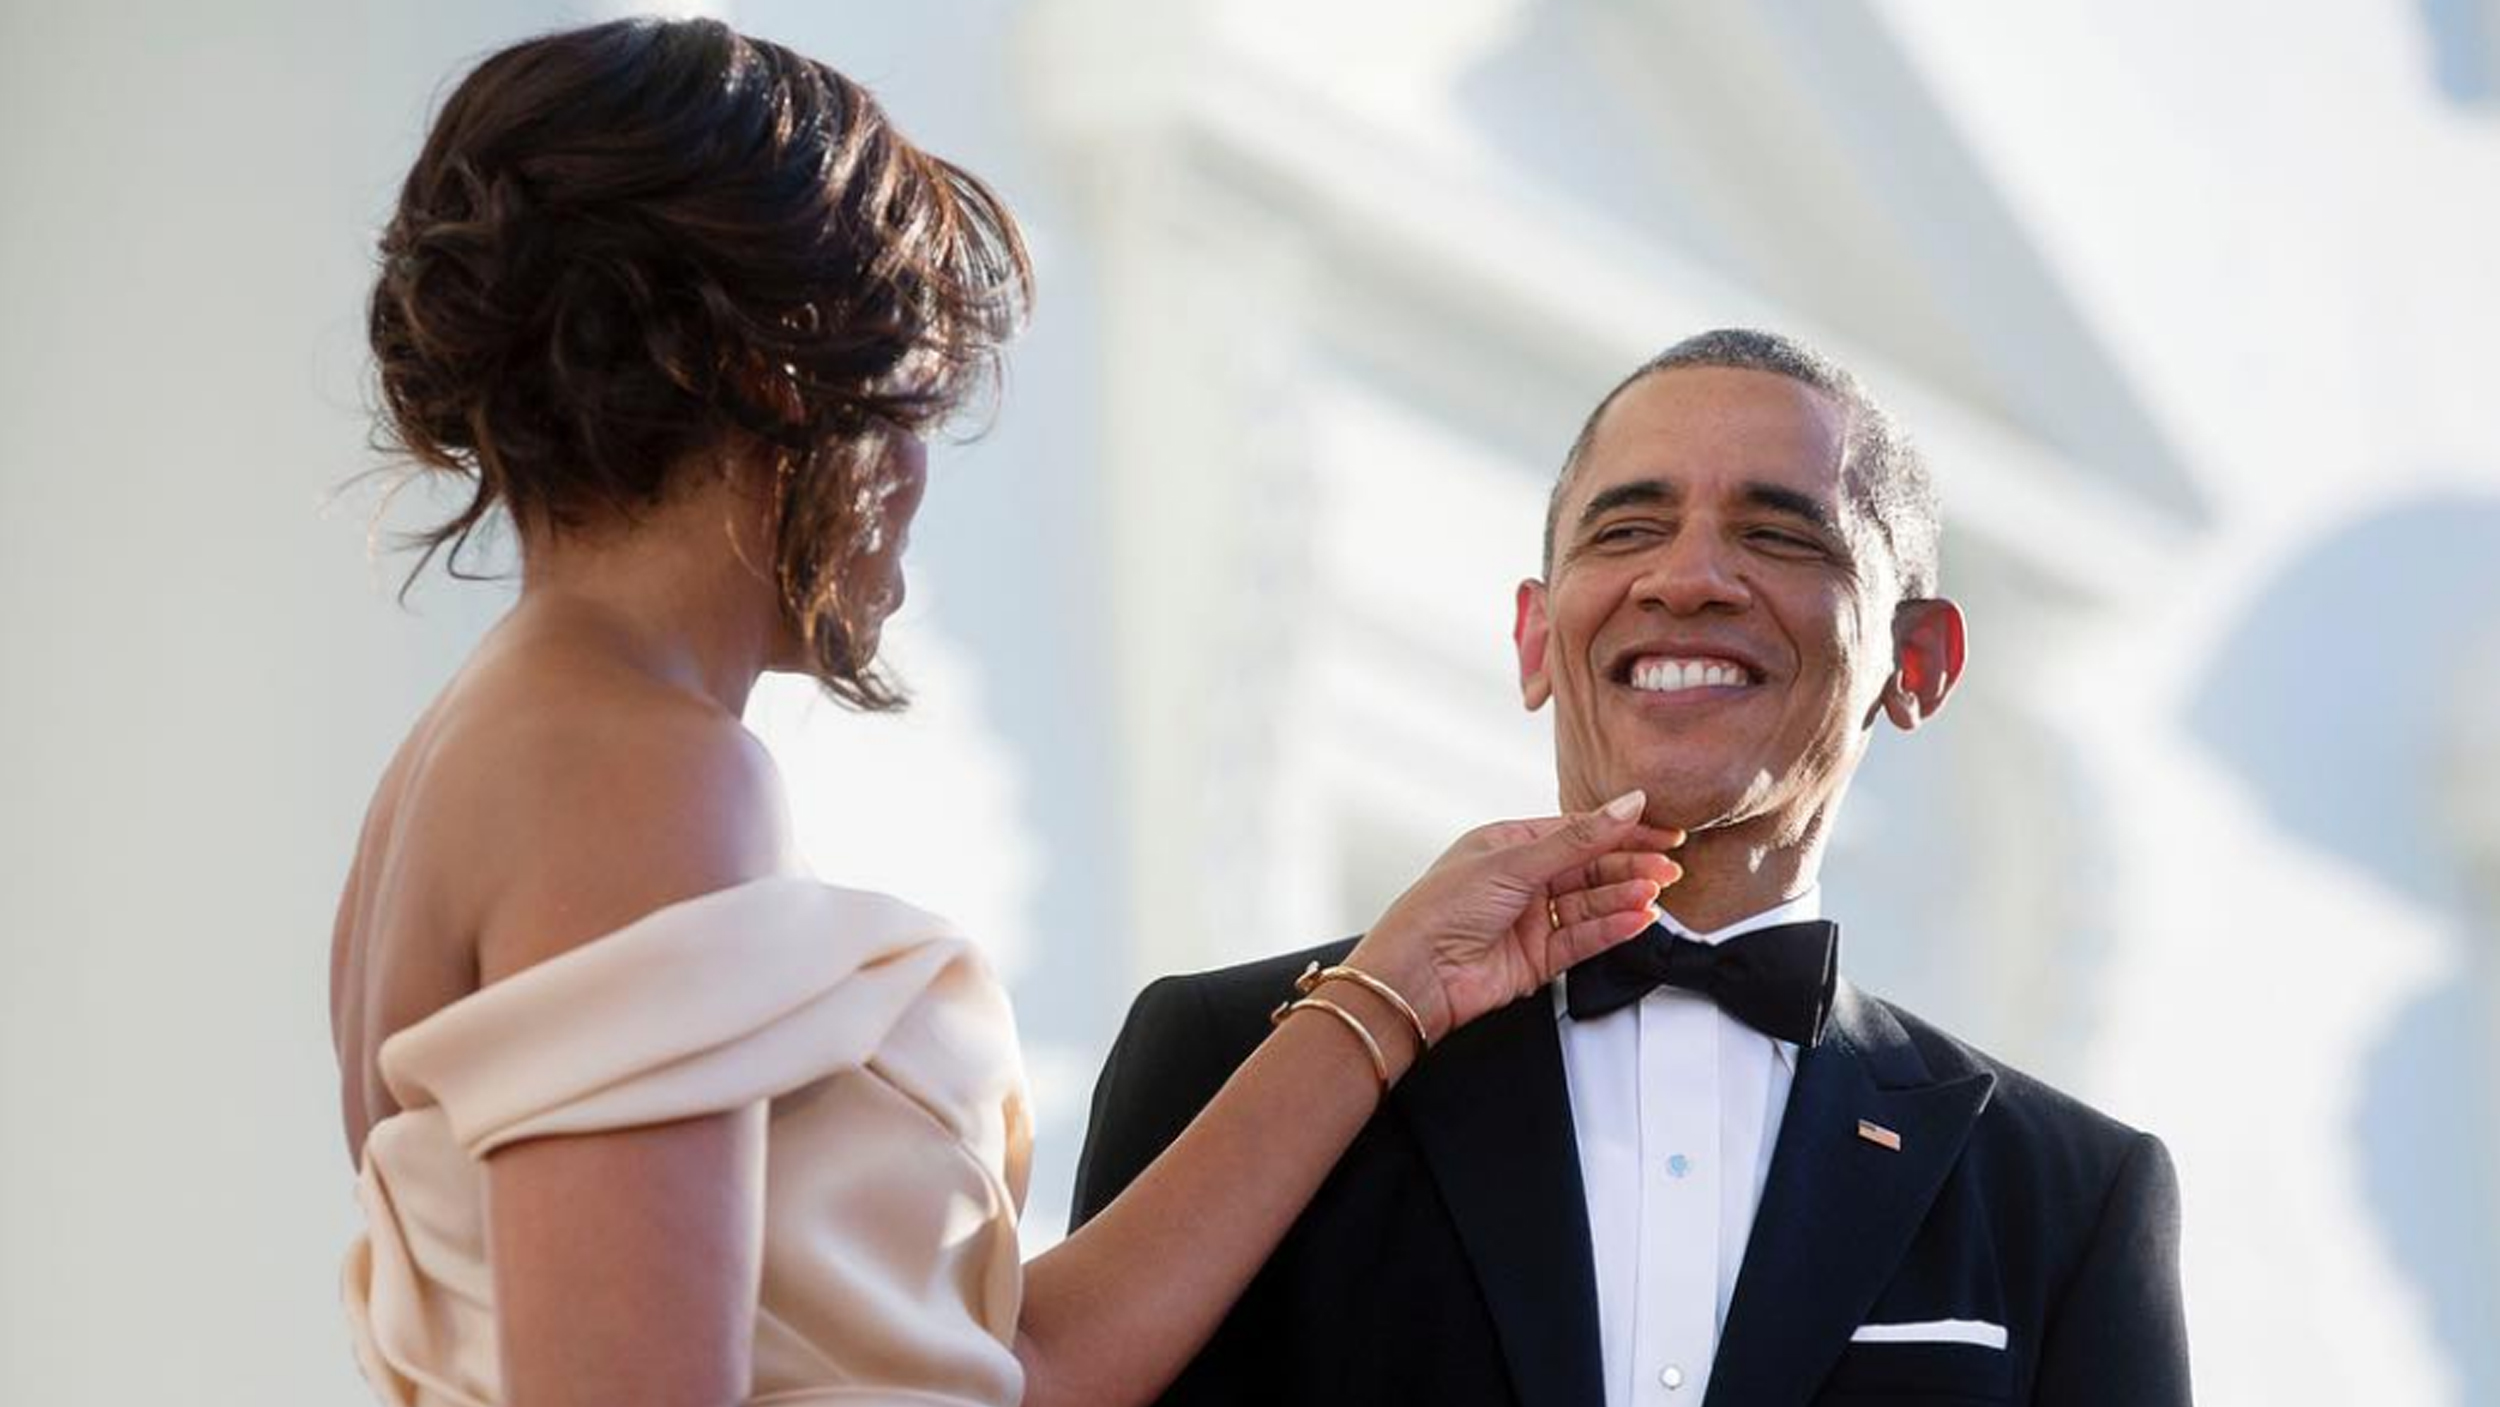 Michelle obama shares sweet birthday message to president today com